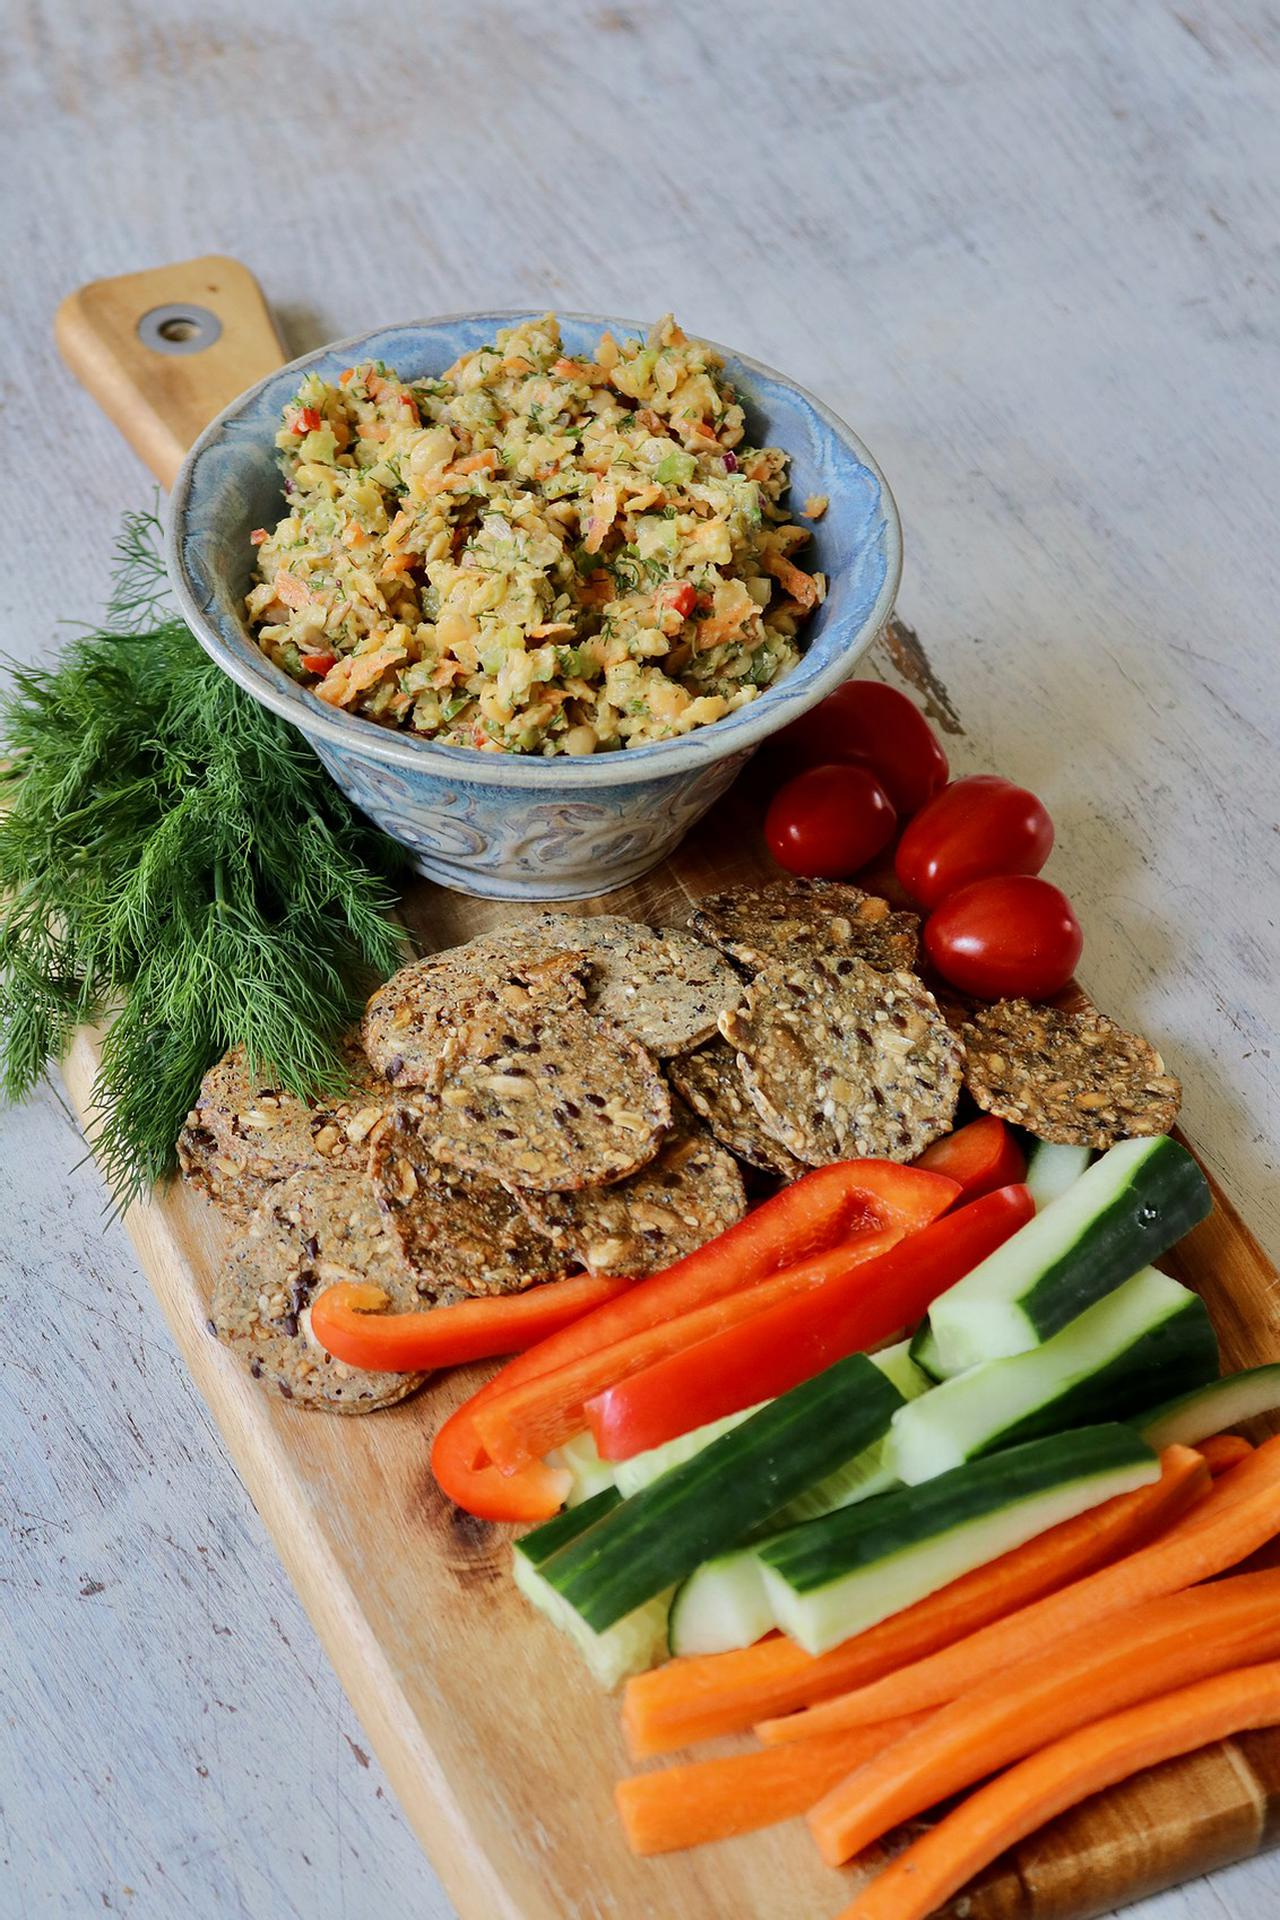 Main image of Garden Chickpea Dill Dip